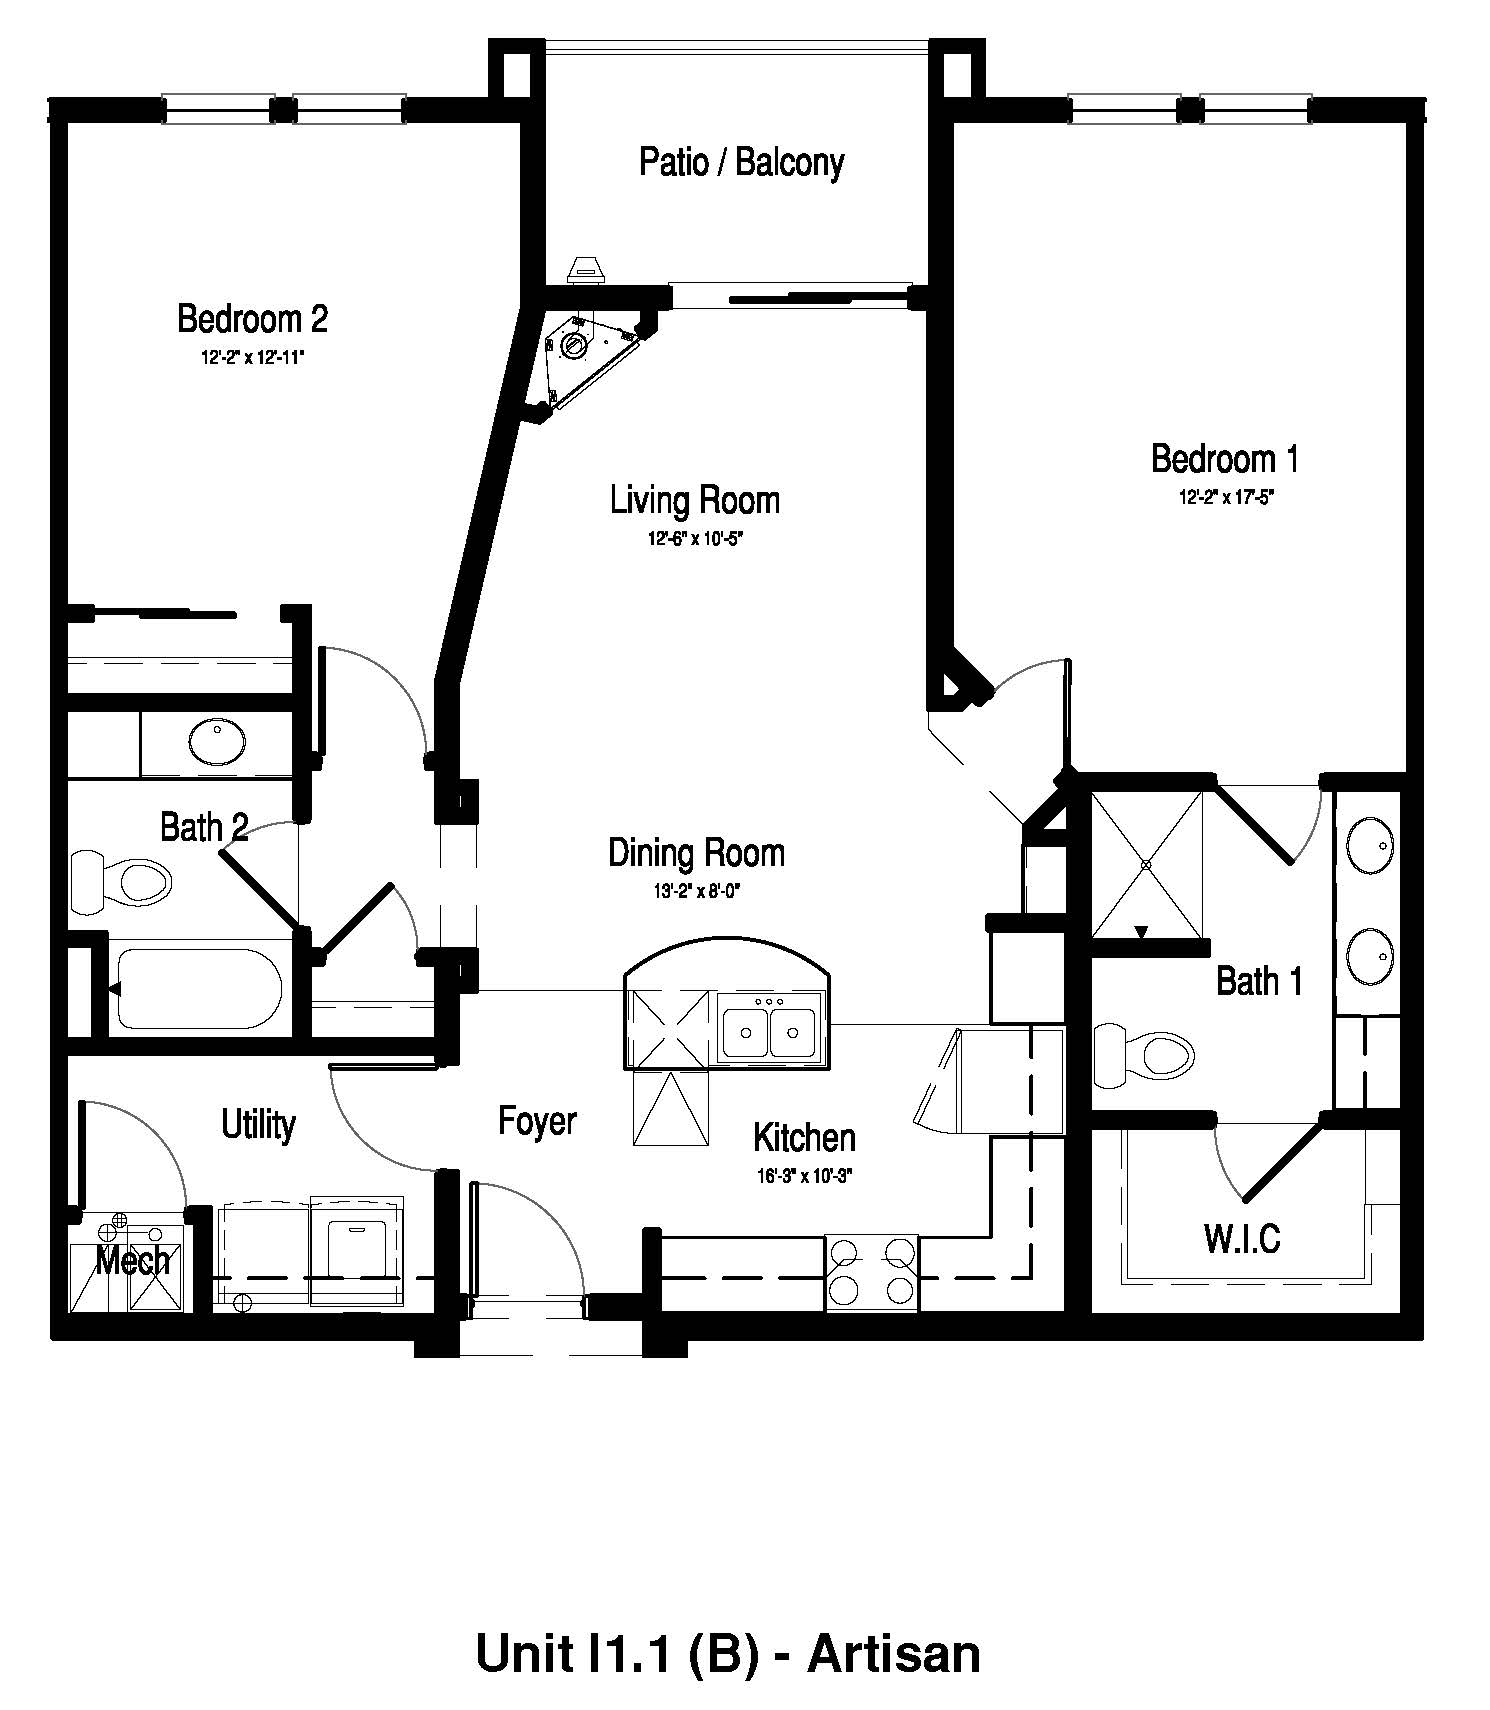 Two Bedroom, Two Bath - 1,153 Sq. Ft. - The Artisan at Georgetown Square